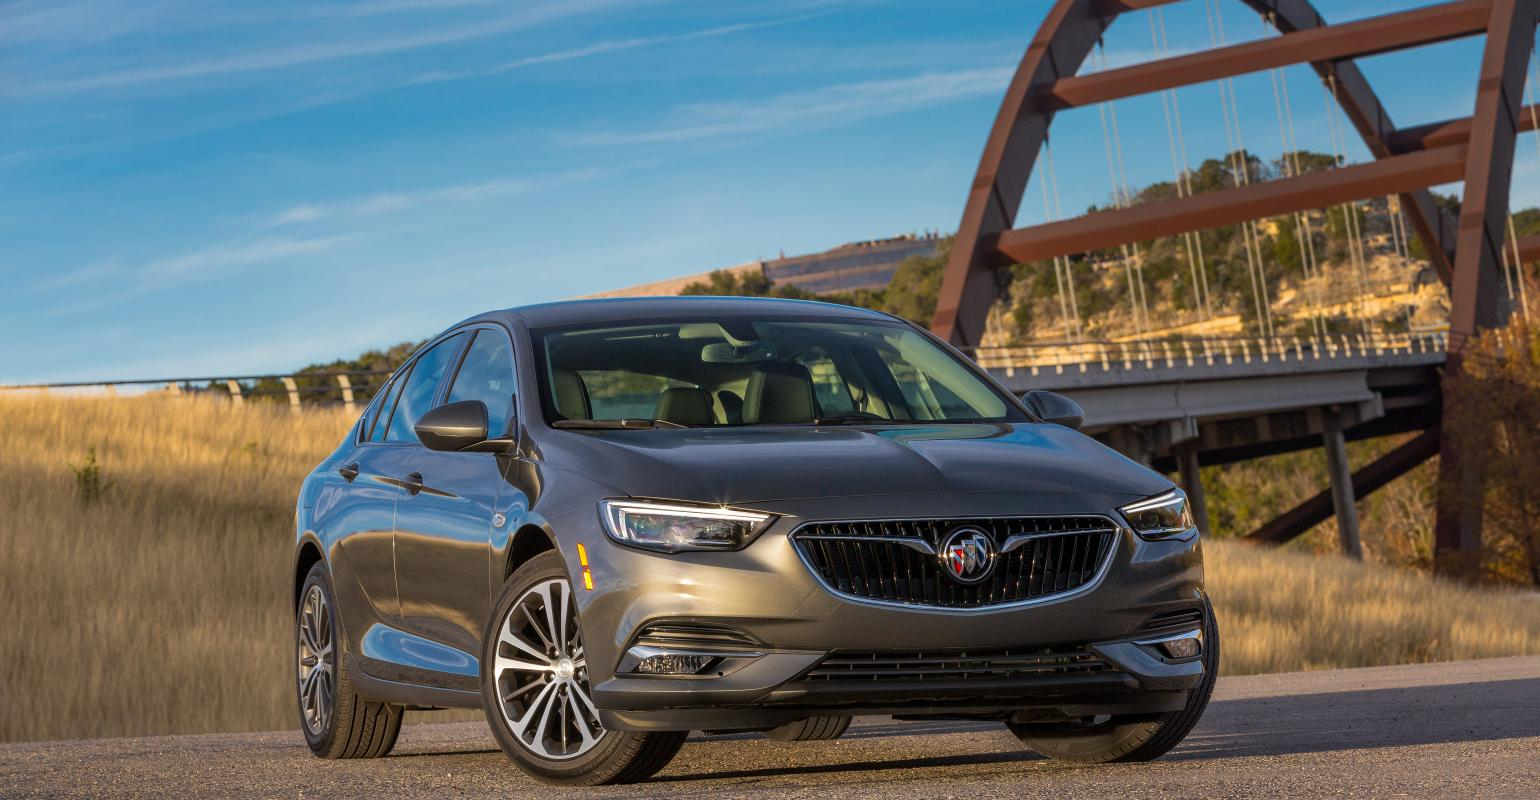 General Motors 2018 Buick Regal Sportback In League Of Its Own